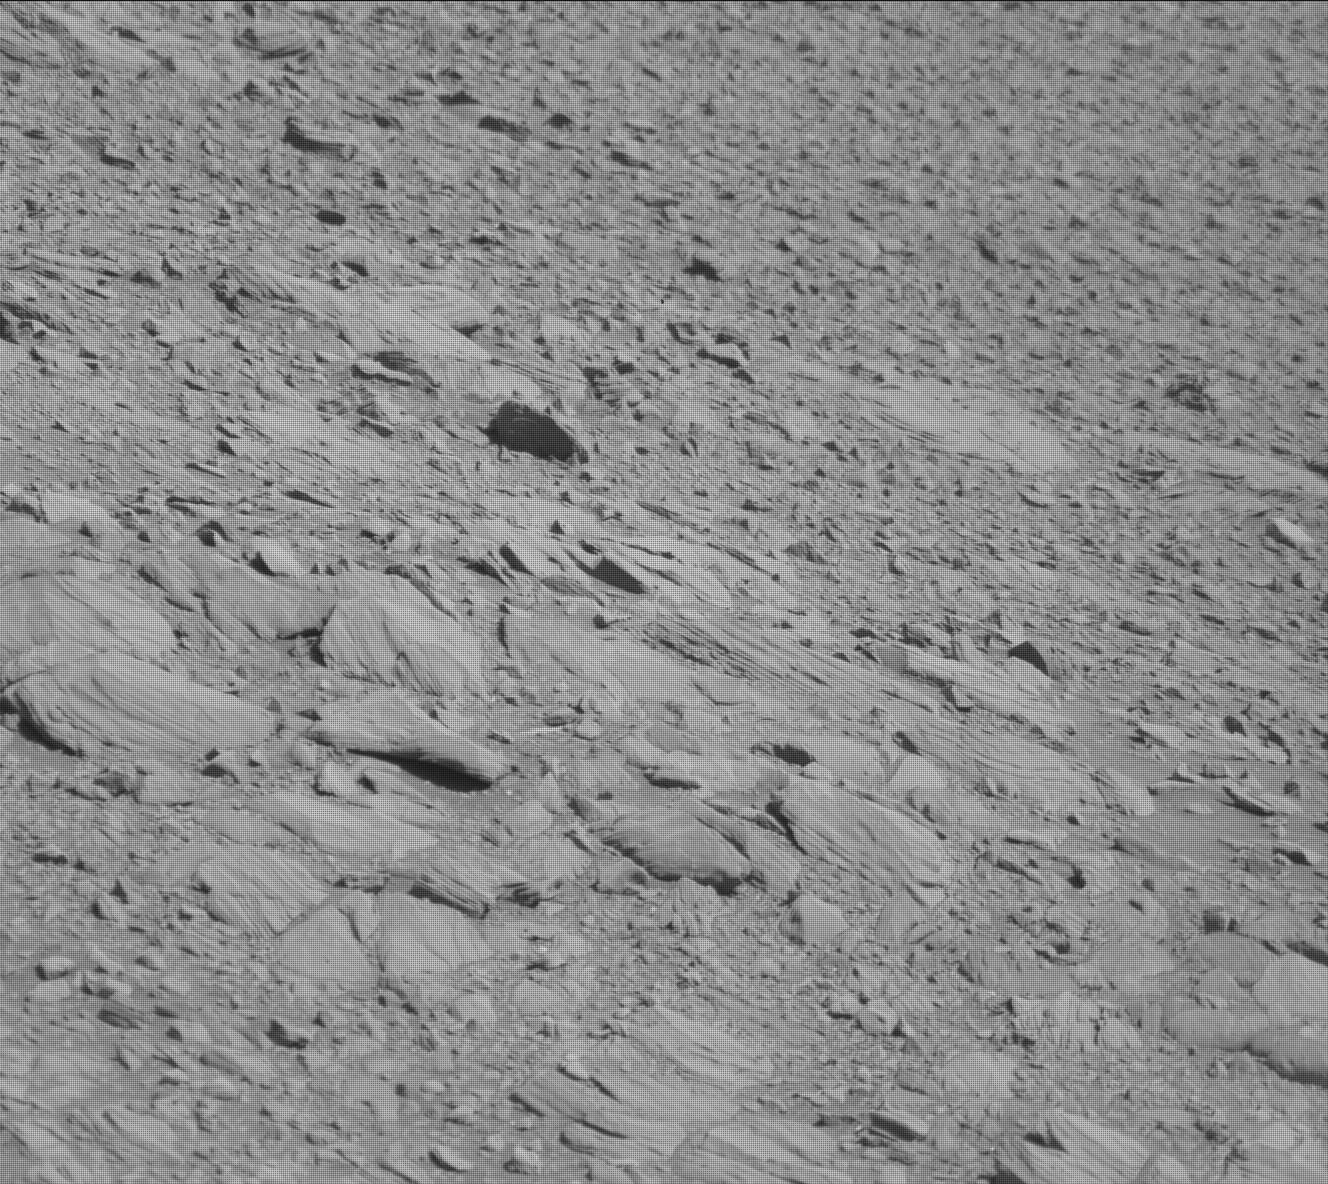 Nasa's Mars rover Curiosity acquired this image using its Mast Camera (Mastcam) on Sol 1911